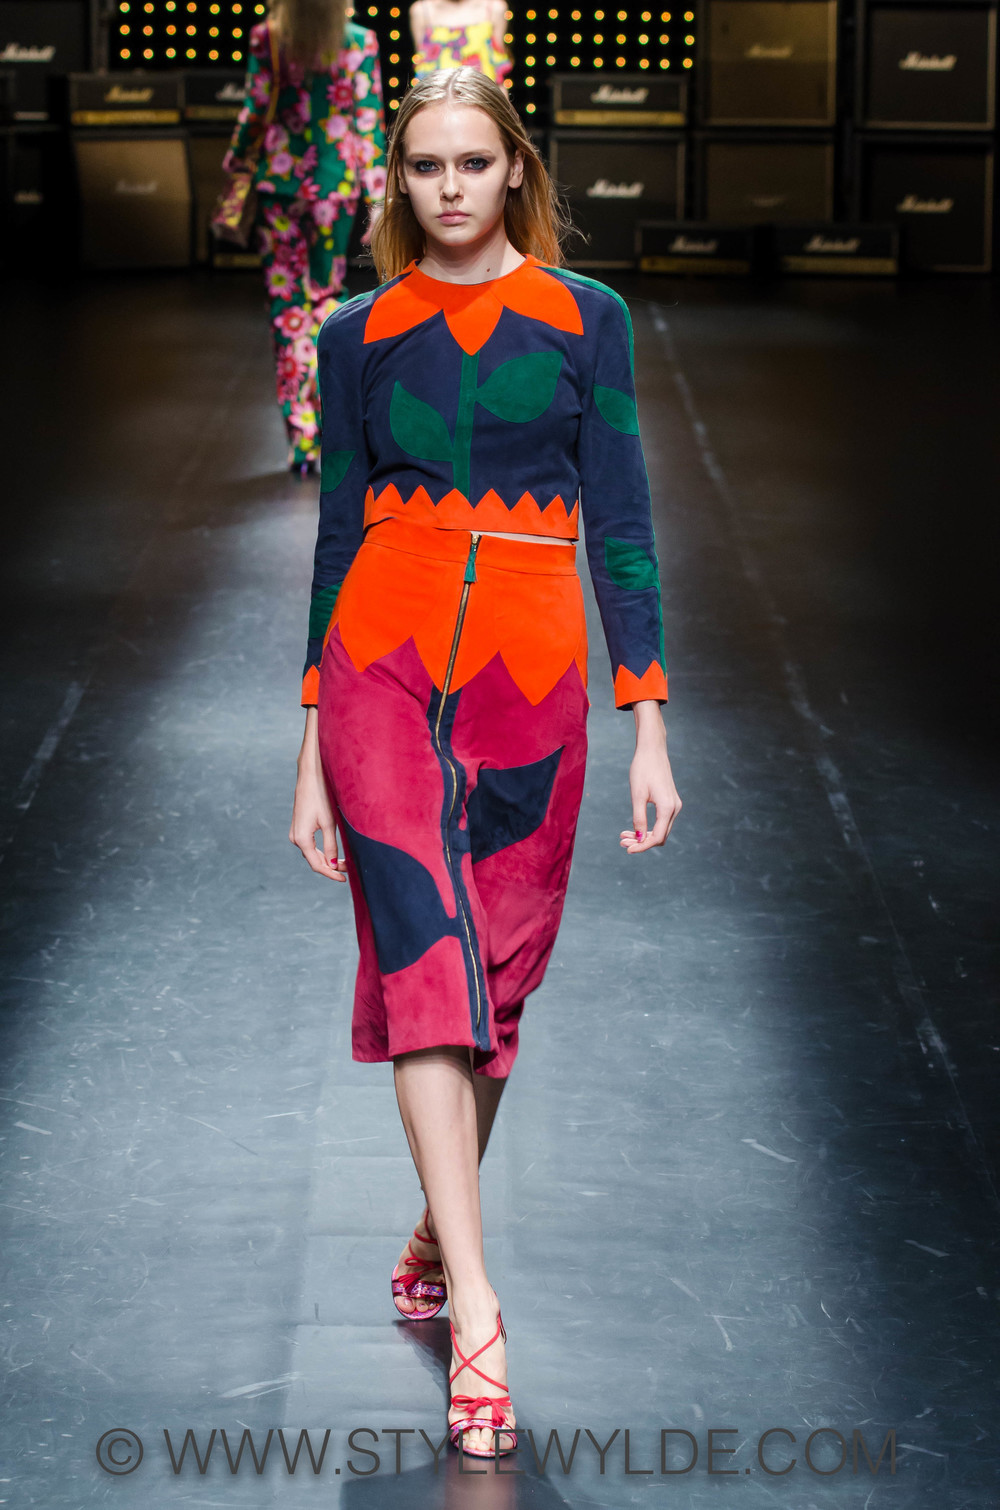 stylewylde_HouseofHolland_SS15 (8 of 68).jpg